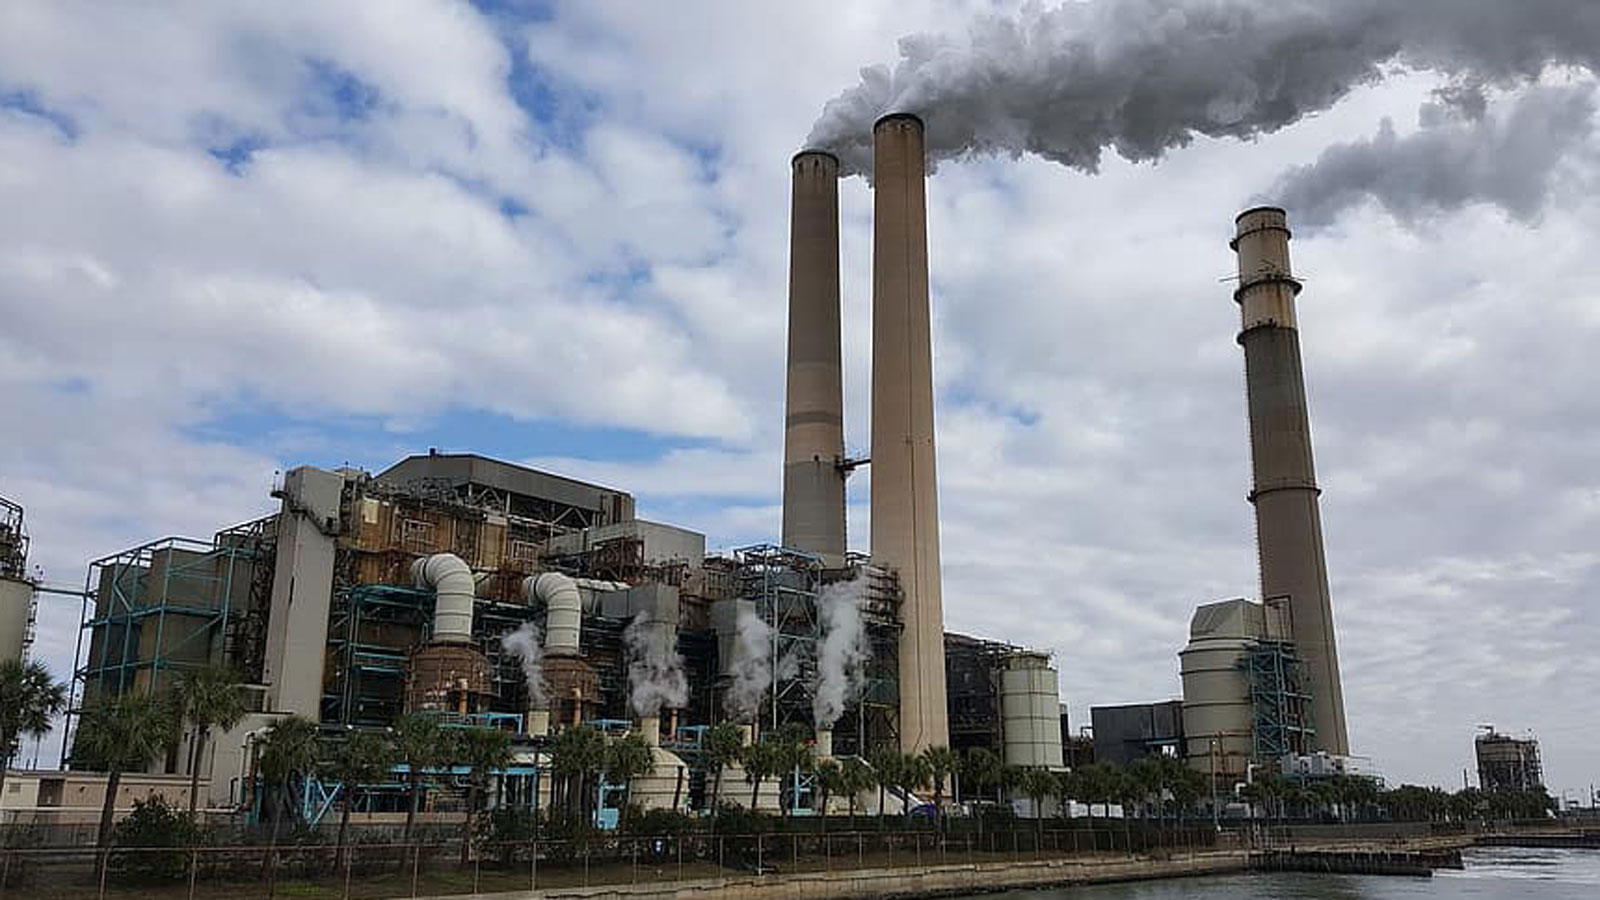 <h6 class='slideTitle'>Actions the Trump administration is taking</h6><h4 class='slideSubtitle'> Undermining  mercury and air toxic standards</h4><h5 class='slideText'>The Trump administration has moved to undermine the rule dramatically reducing mercury pollution from power plants that has contaminated fish in our rivers, lakes and streams.</h5><p class='slideCredit'>Big Bend power plant in Tampa, Fla.<br>Public Domain via Pikist</p>